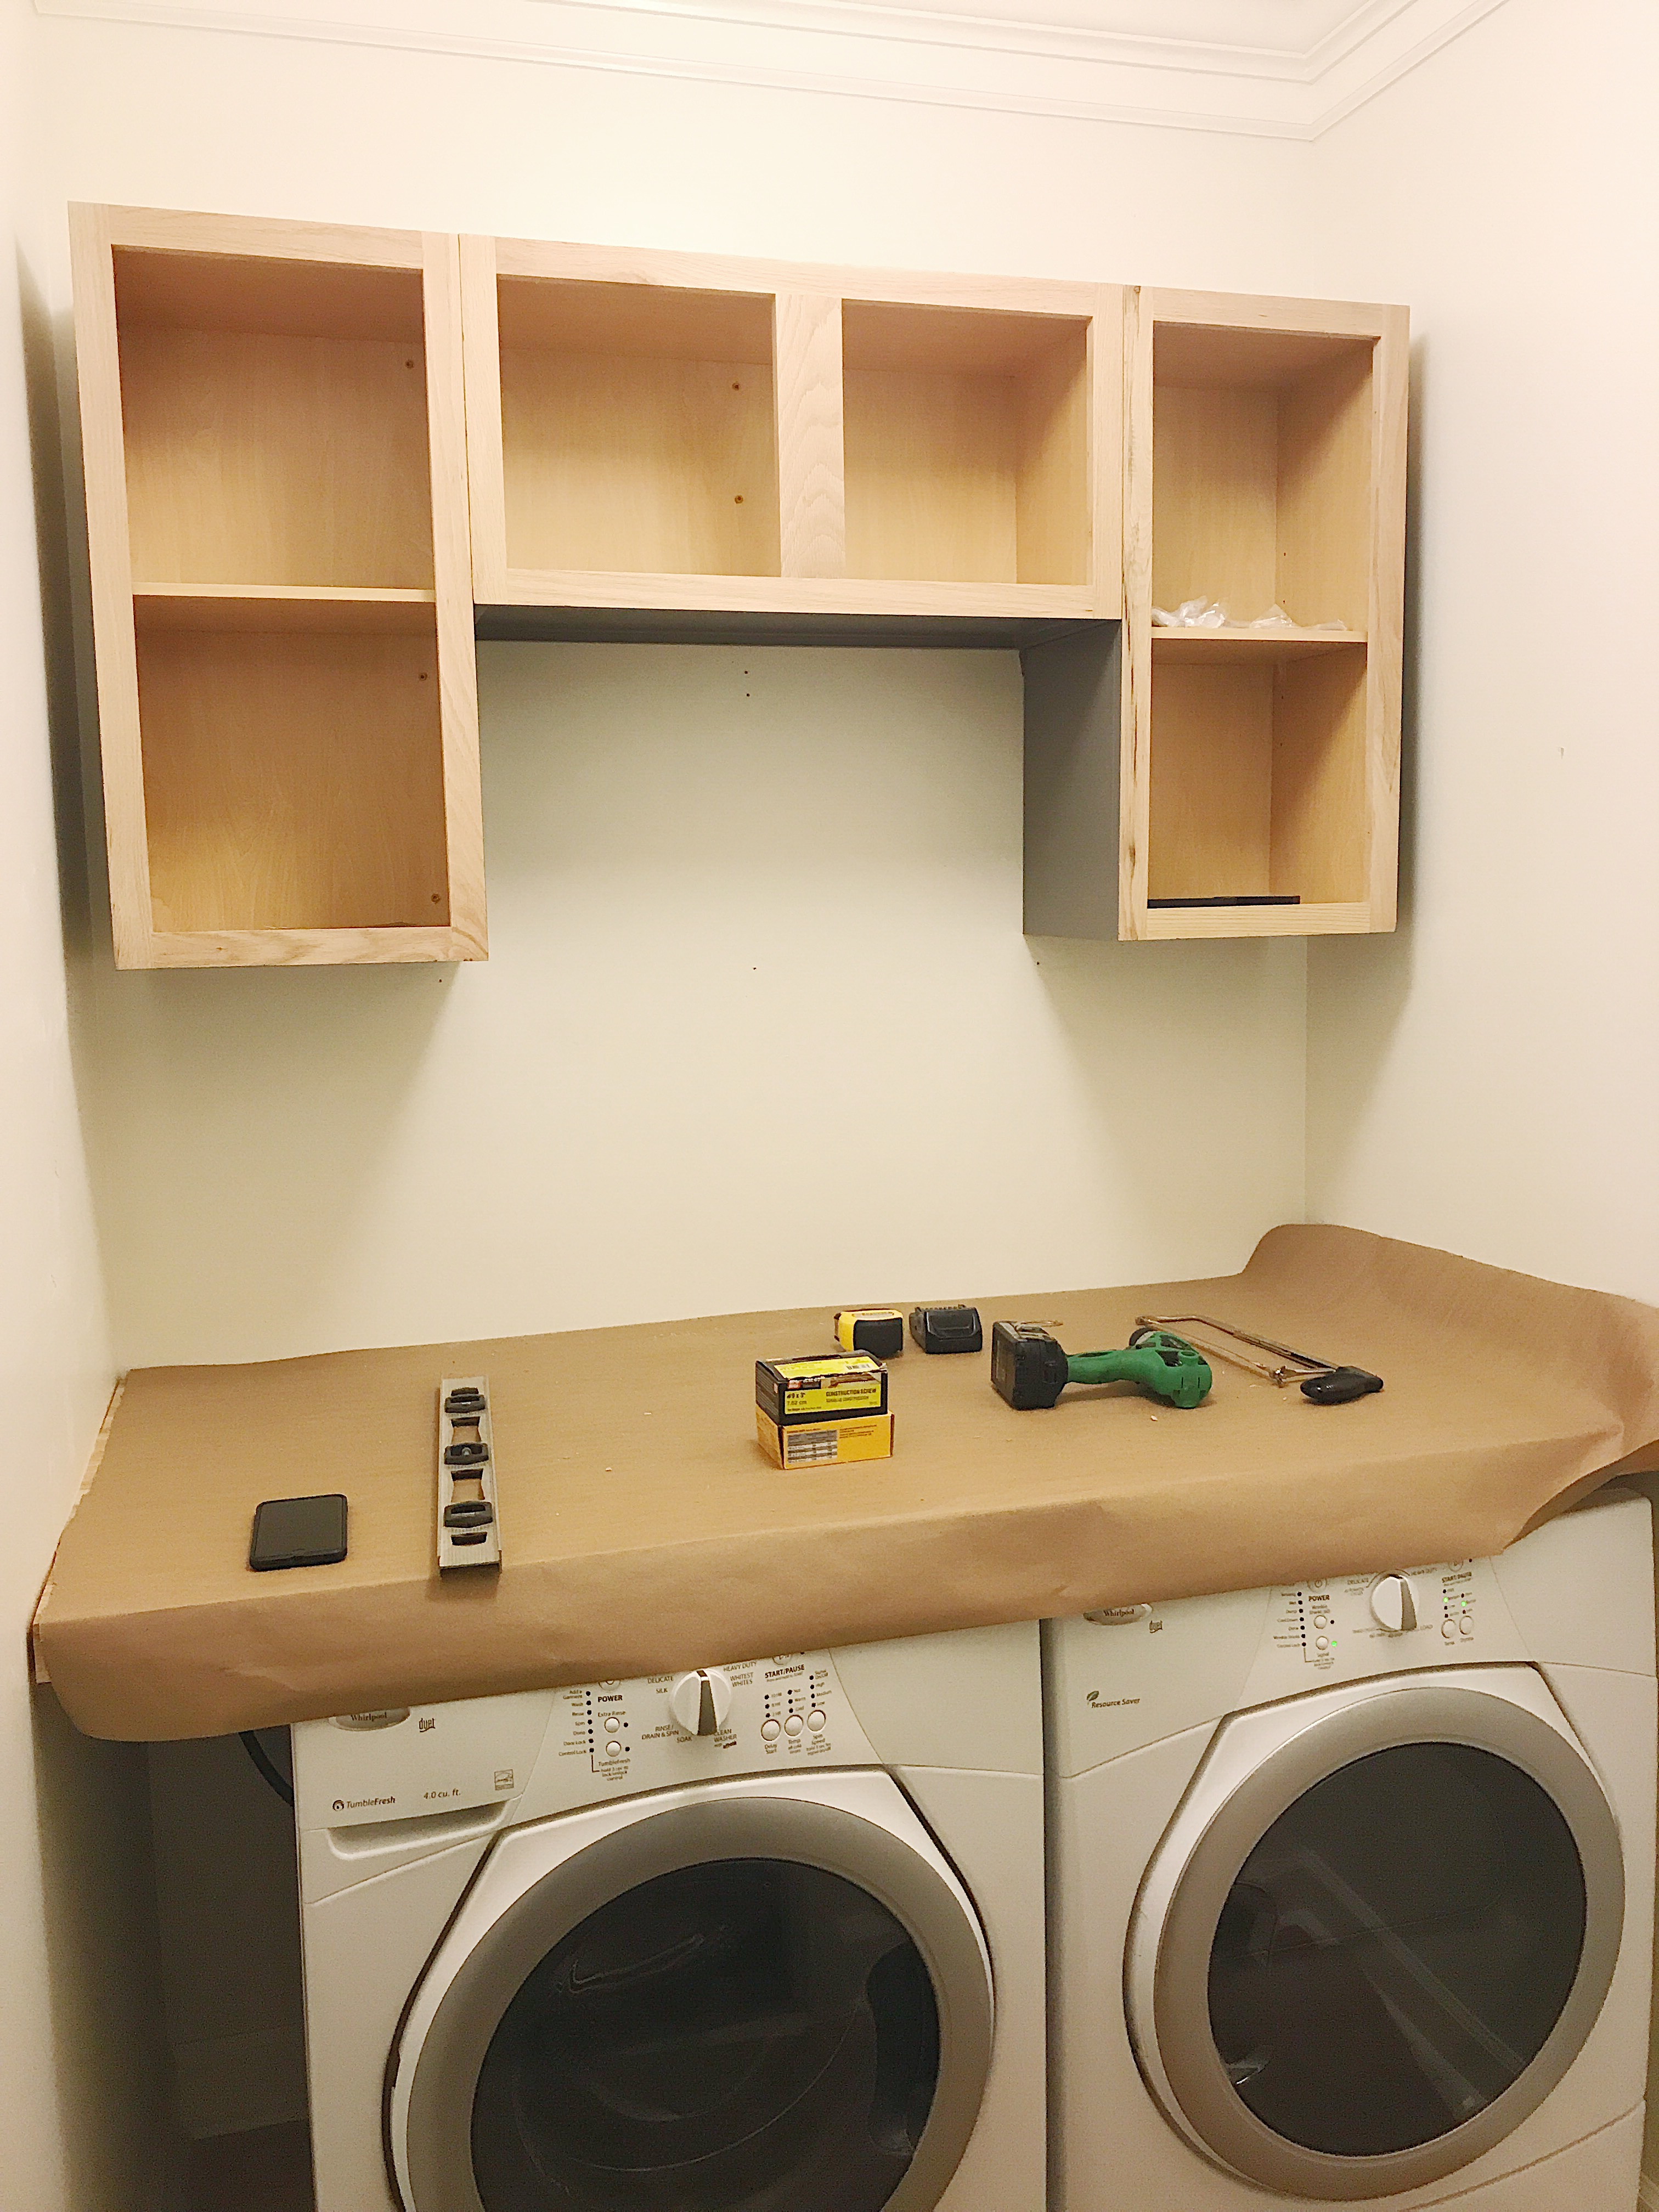 Farmhouse Laundry Room Installing Countertop and Cabinets | ORC Week 5